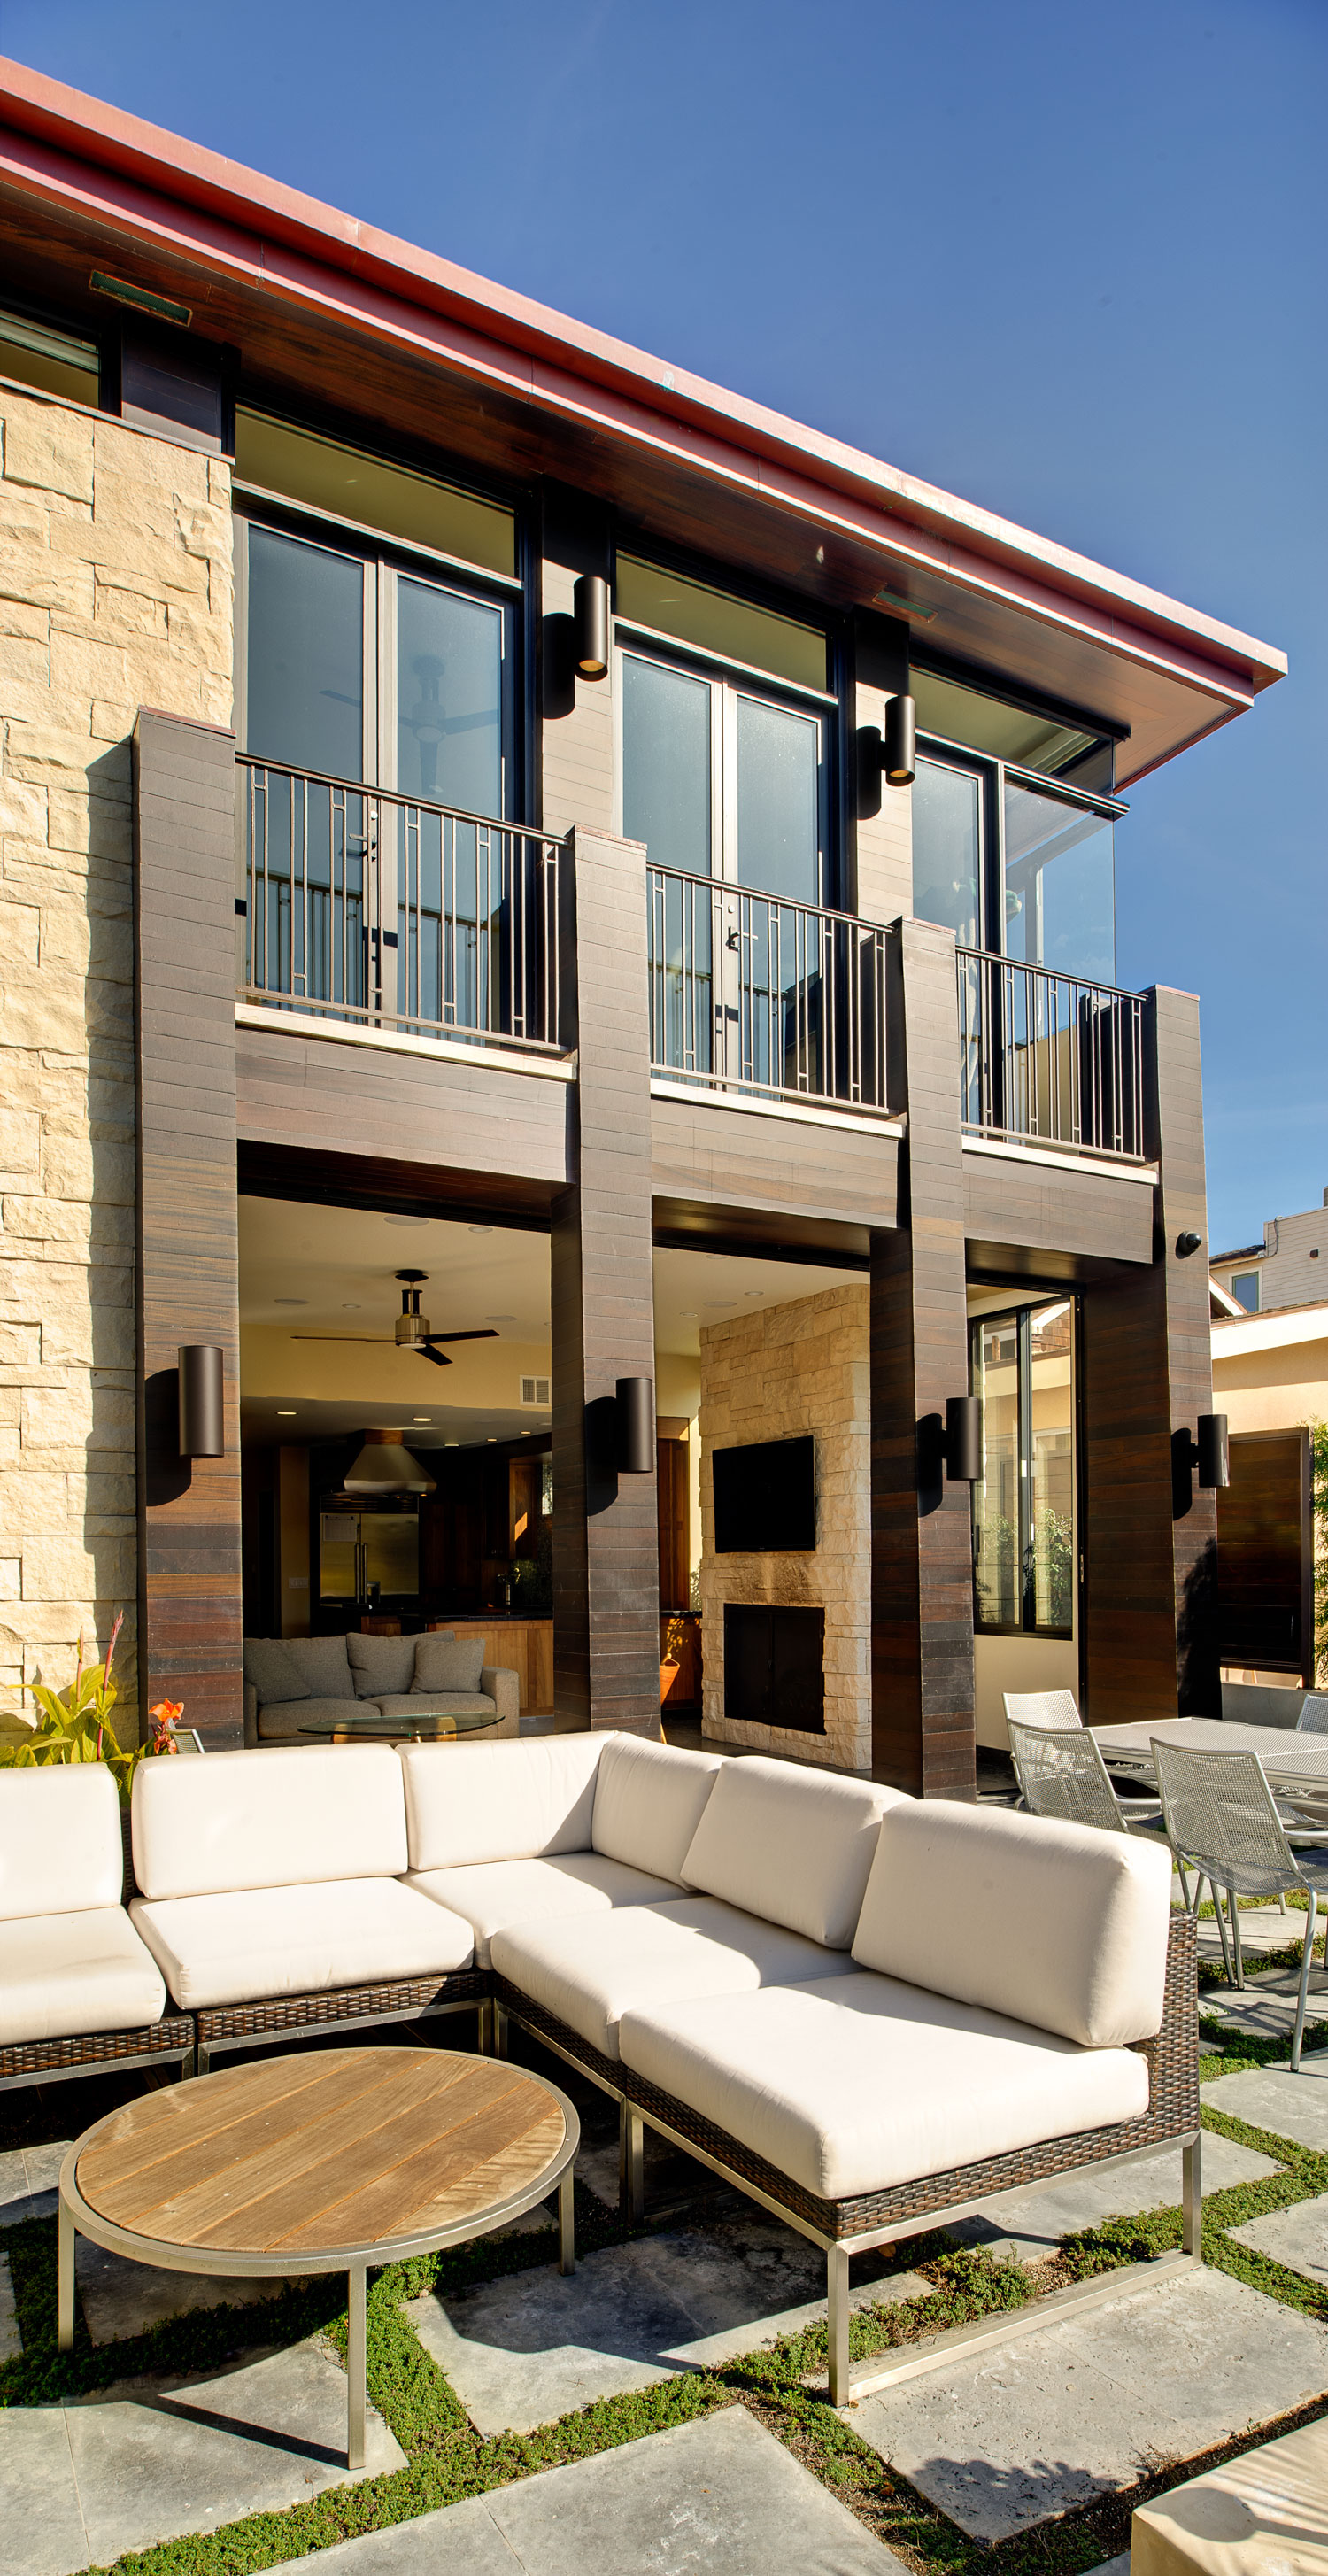 13-SiliconBay-outdoor-living-patio-los-angeles-modern.jpg